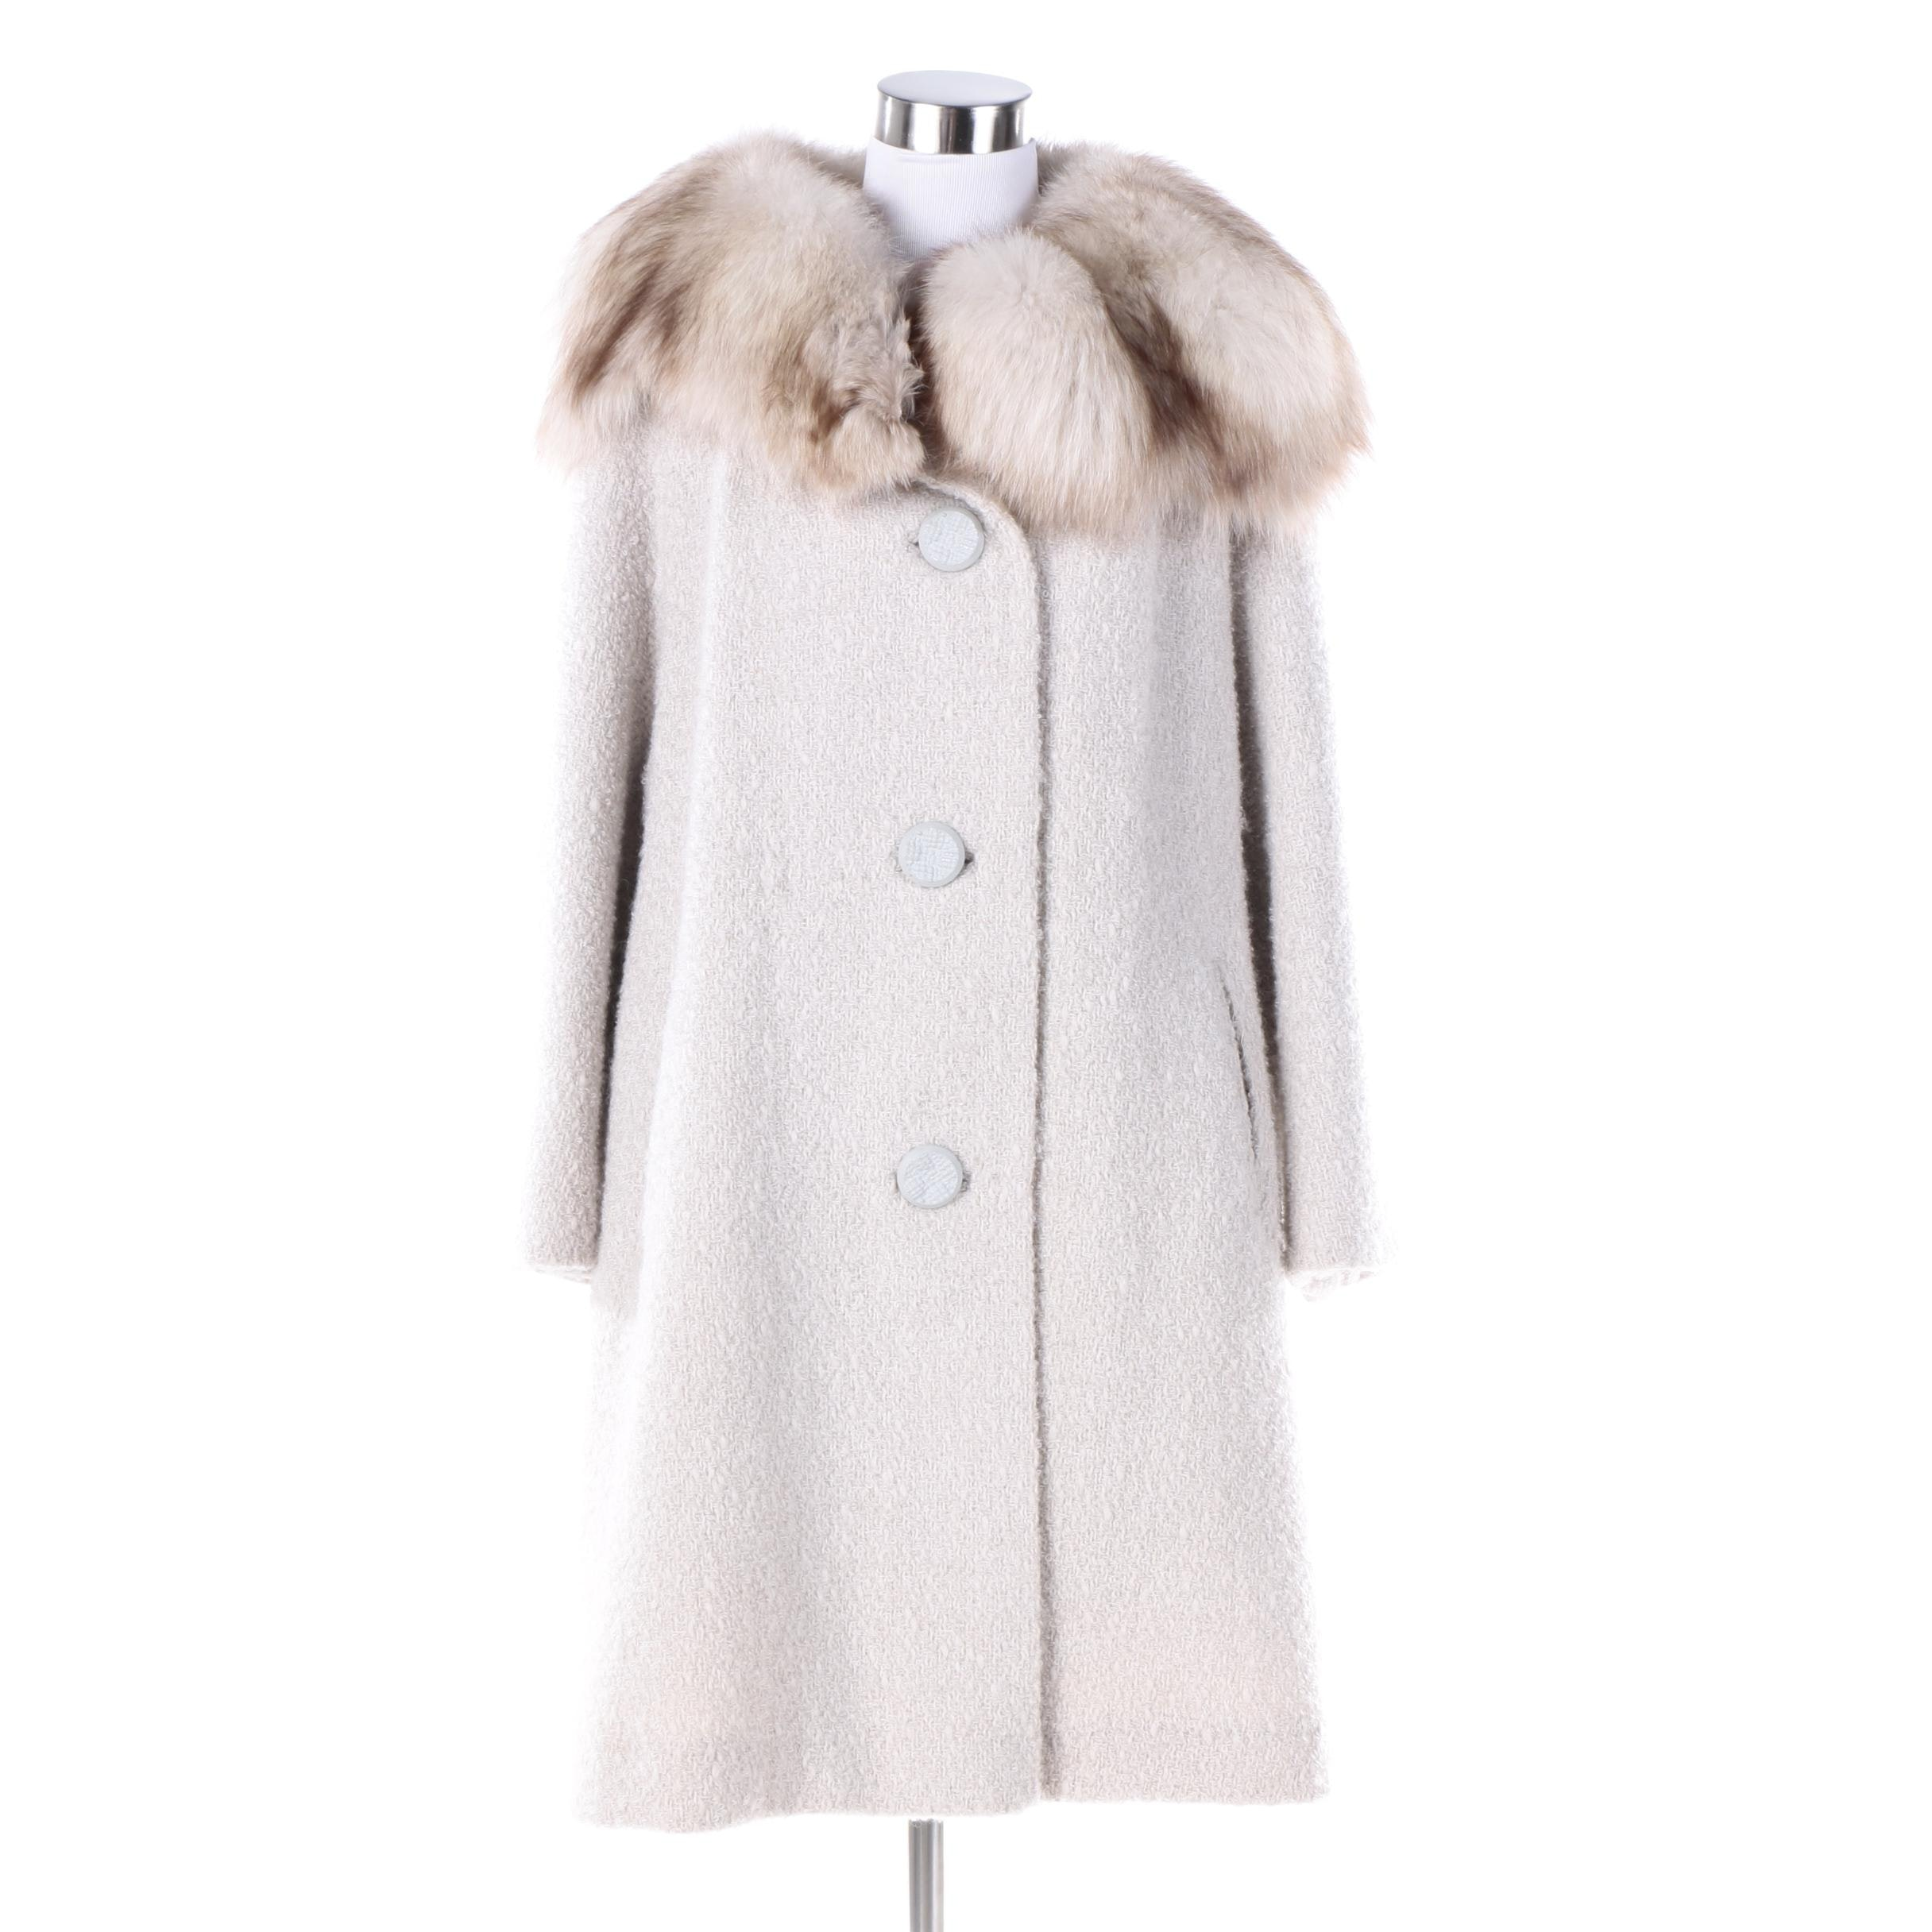 Women's Vintage Hockanum Fabric Serena Wool Coat with Fox Fur Collar